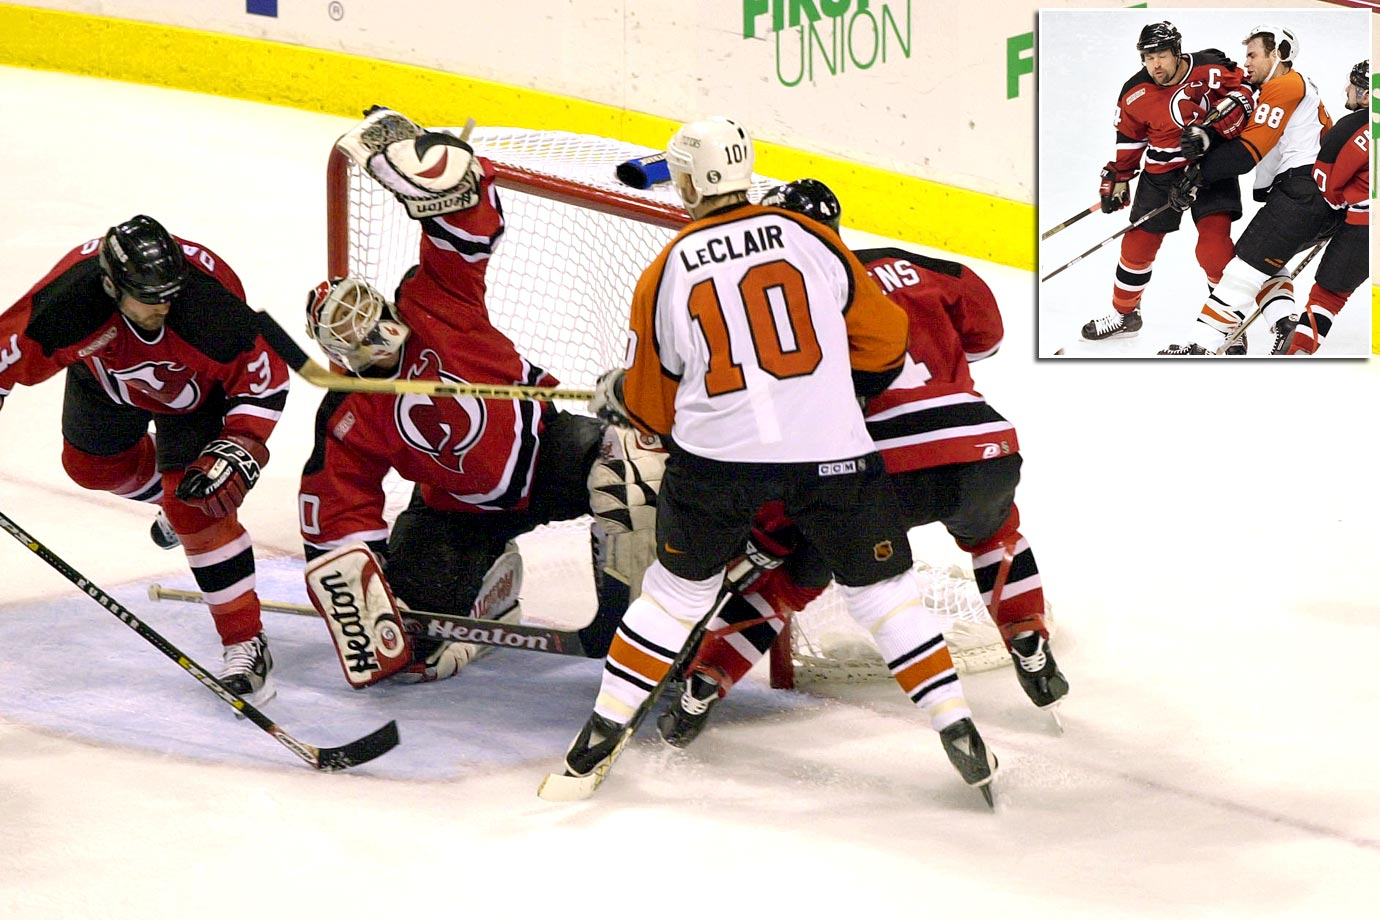 After falling behind in the series, 3-1, the Devils slammed the door on the Flyers. Martin Brodeur was brilliant as the Devils won both Game 6 and Game 7 by 2-1 scores. Game 7 was played in Philadelphia and Flyers fans will never forget the sight of Devils defenseman Scott Stevens drilling Eric Lindros (inset) as the Flyers captain crossed the blue line with his head down early in the first period. Patrik Elias scored the decisive goal for the Devils in the third period.